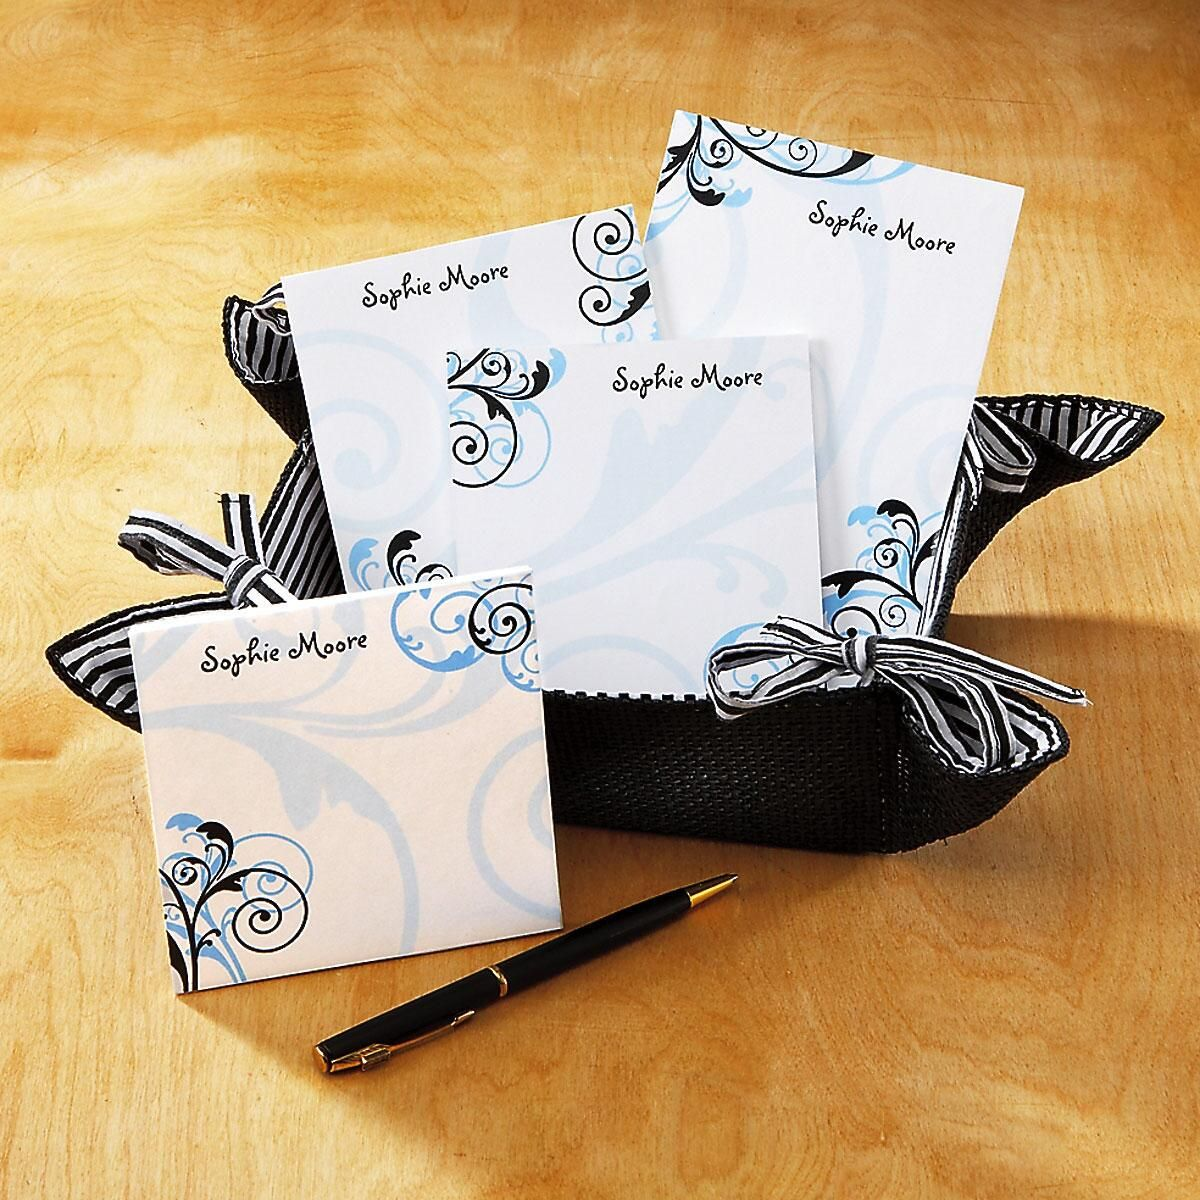 Personalized Notes in a Basket